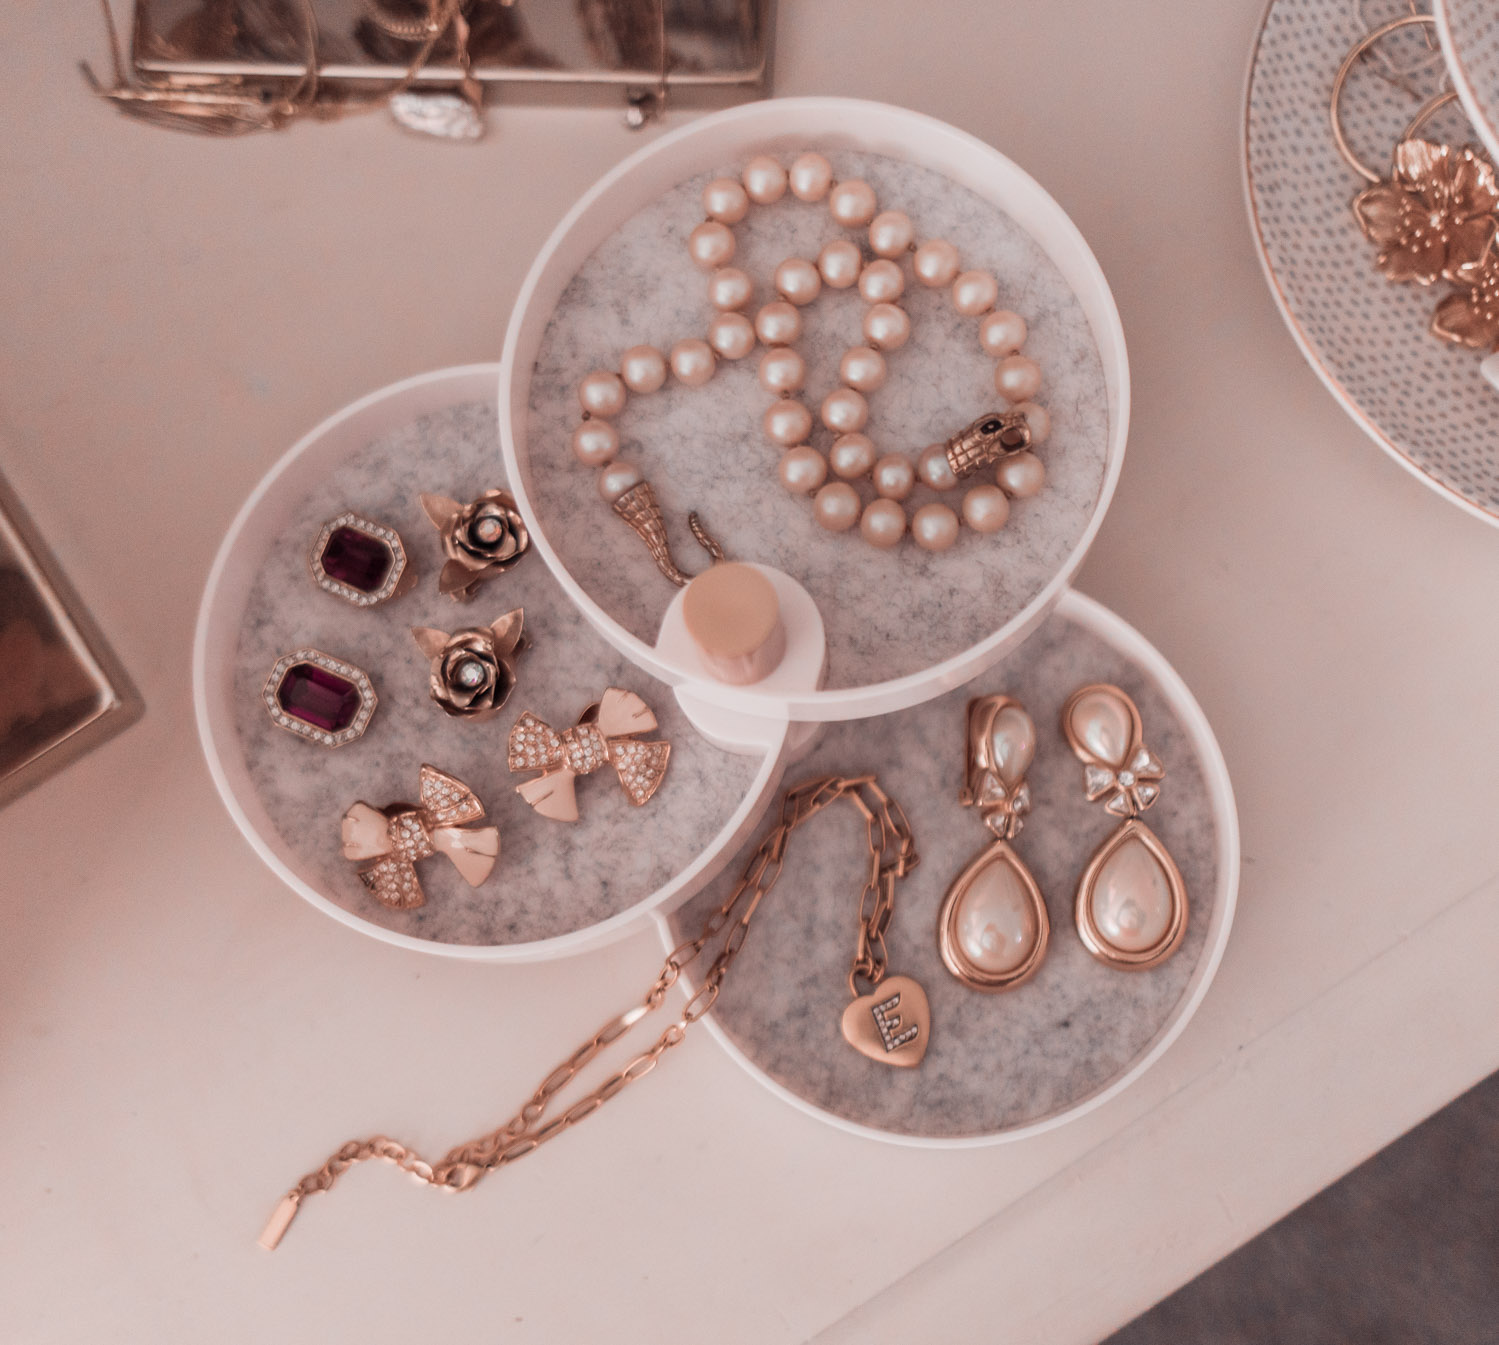 Feminine Fashion Blogger Elizabeth Hugen of Lizzie in Lace shares a peek into the FabFitFun Fall Box including the The2Bandits Catchall Tray